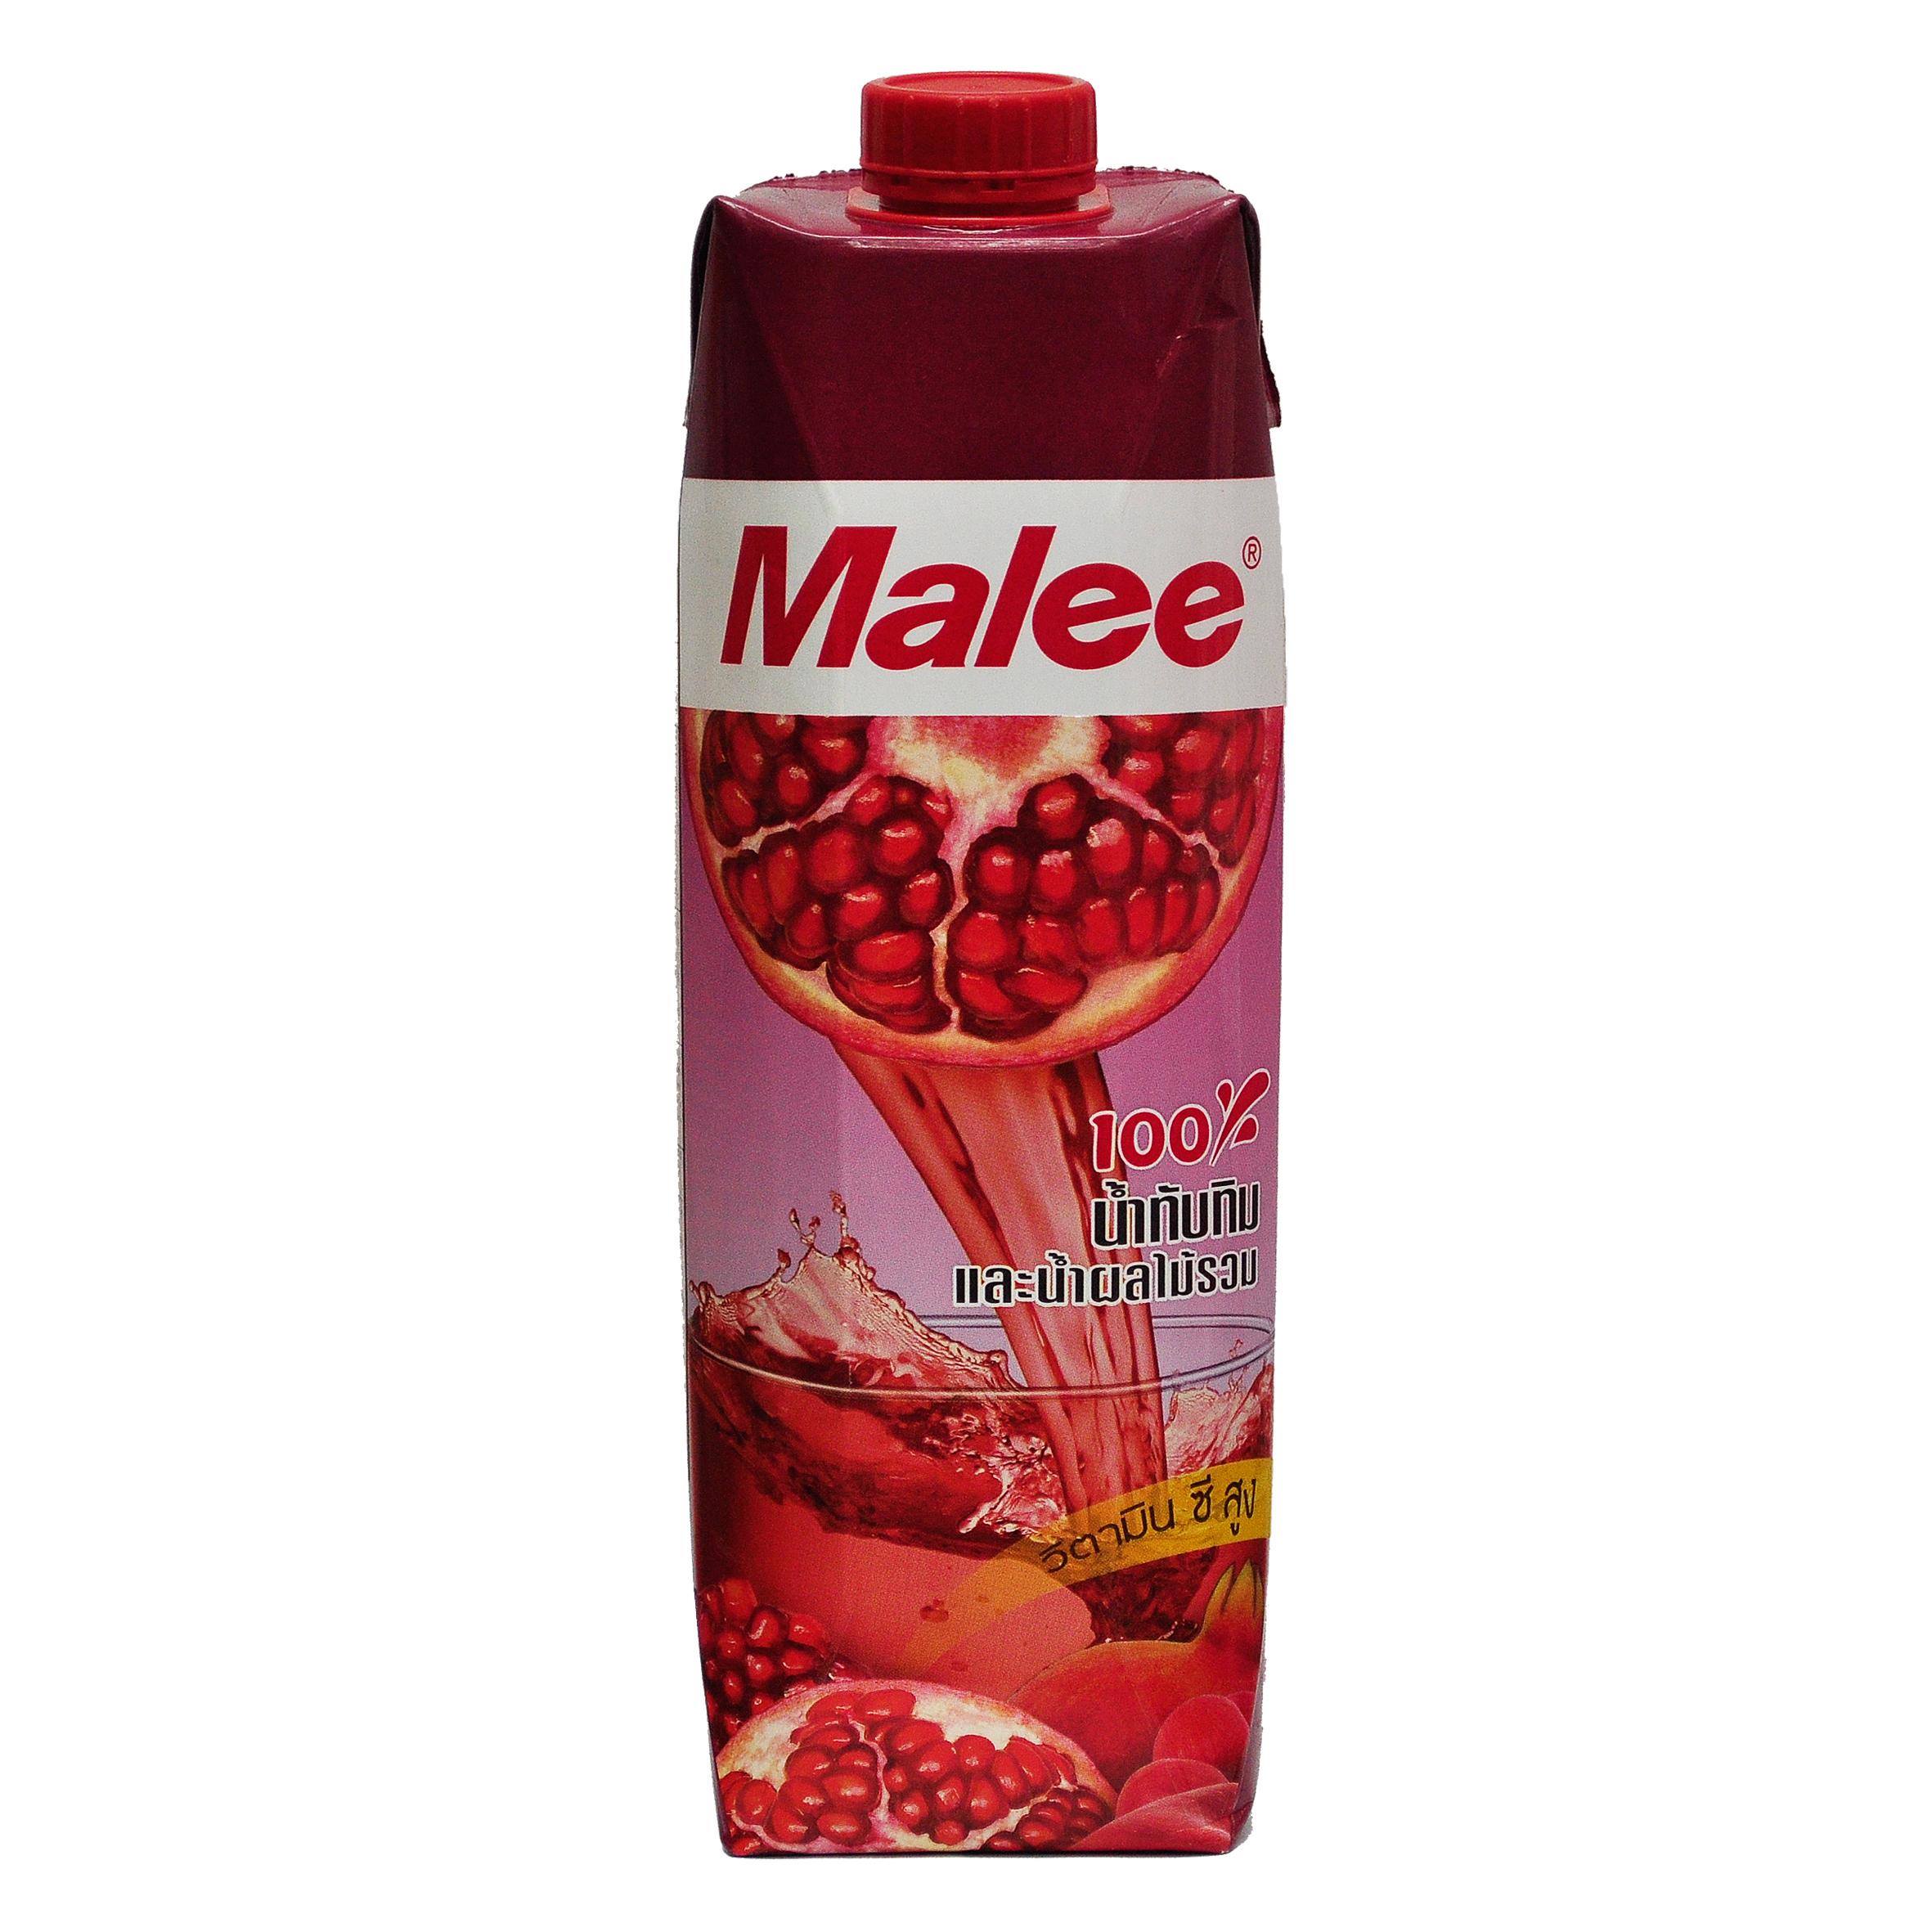 Malee 100Percent Pomegranate and mixed Fruit Juice Thai Side.jpg